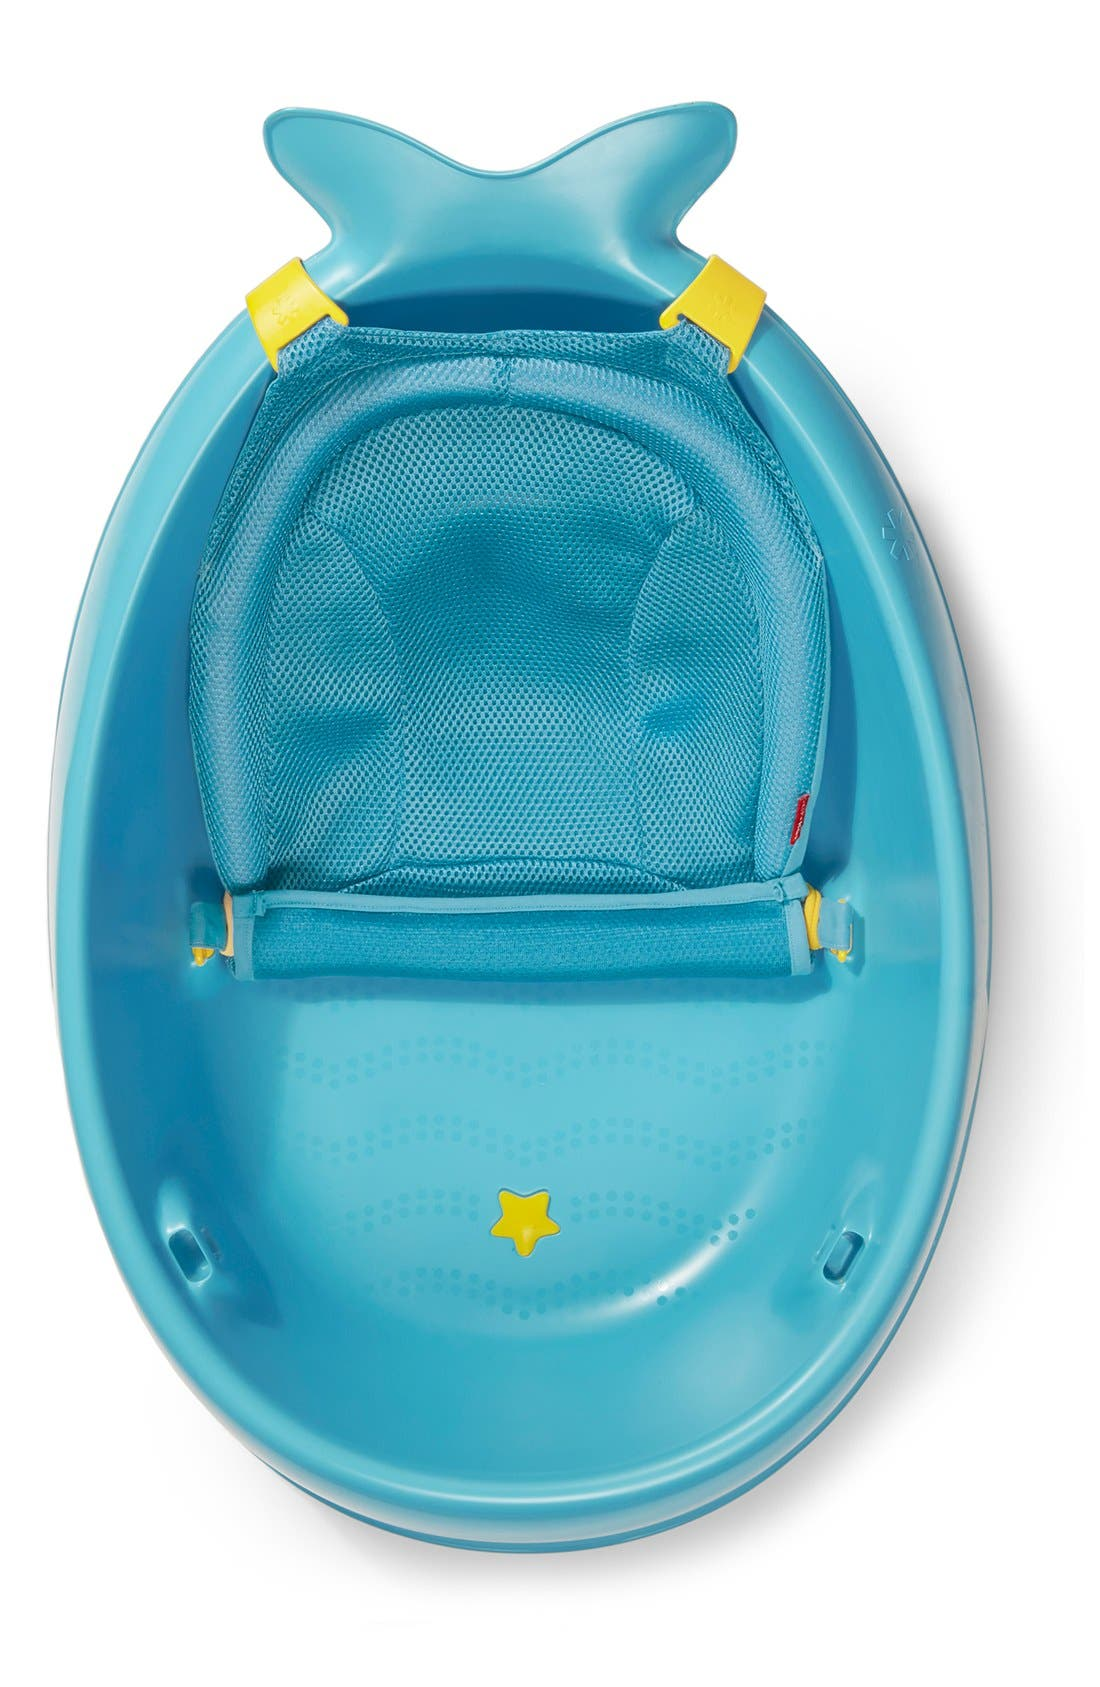 'Moby Smart Sling' Three-Stage Tub,                             Alternate thumbnail 2, color,                             BLUE